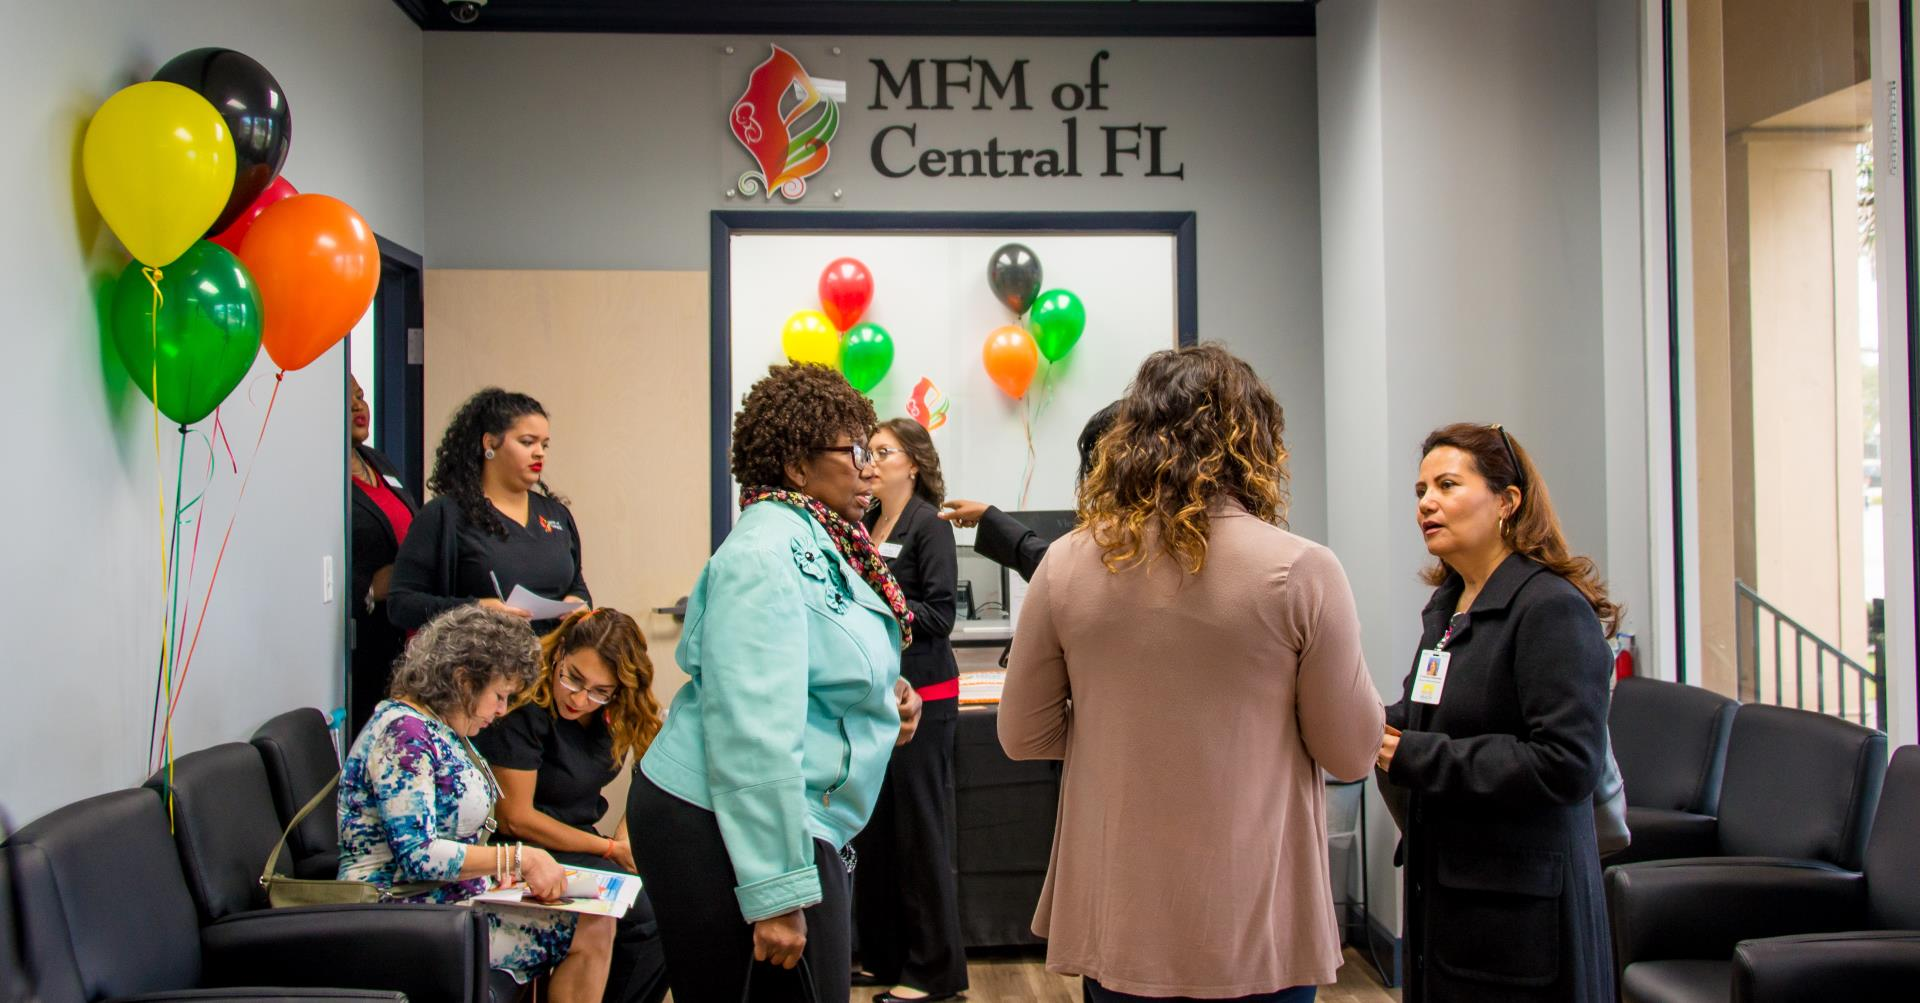 MFM Ribbon Cutting (1 of 5)